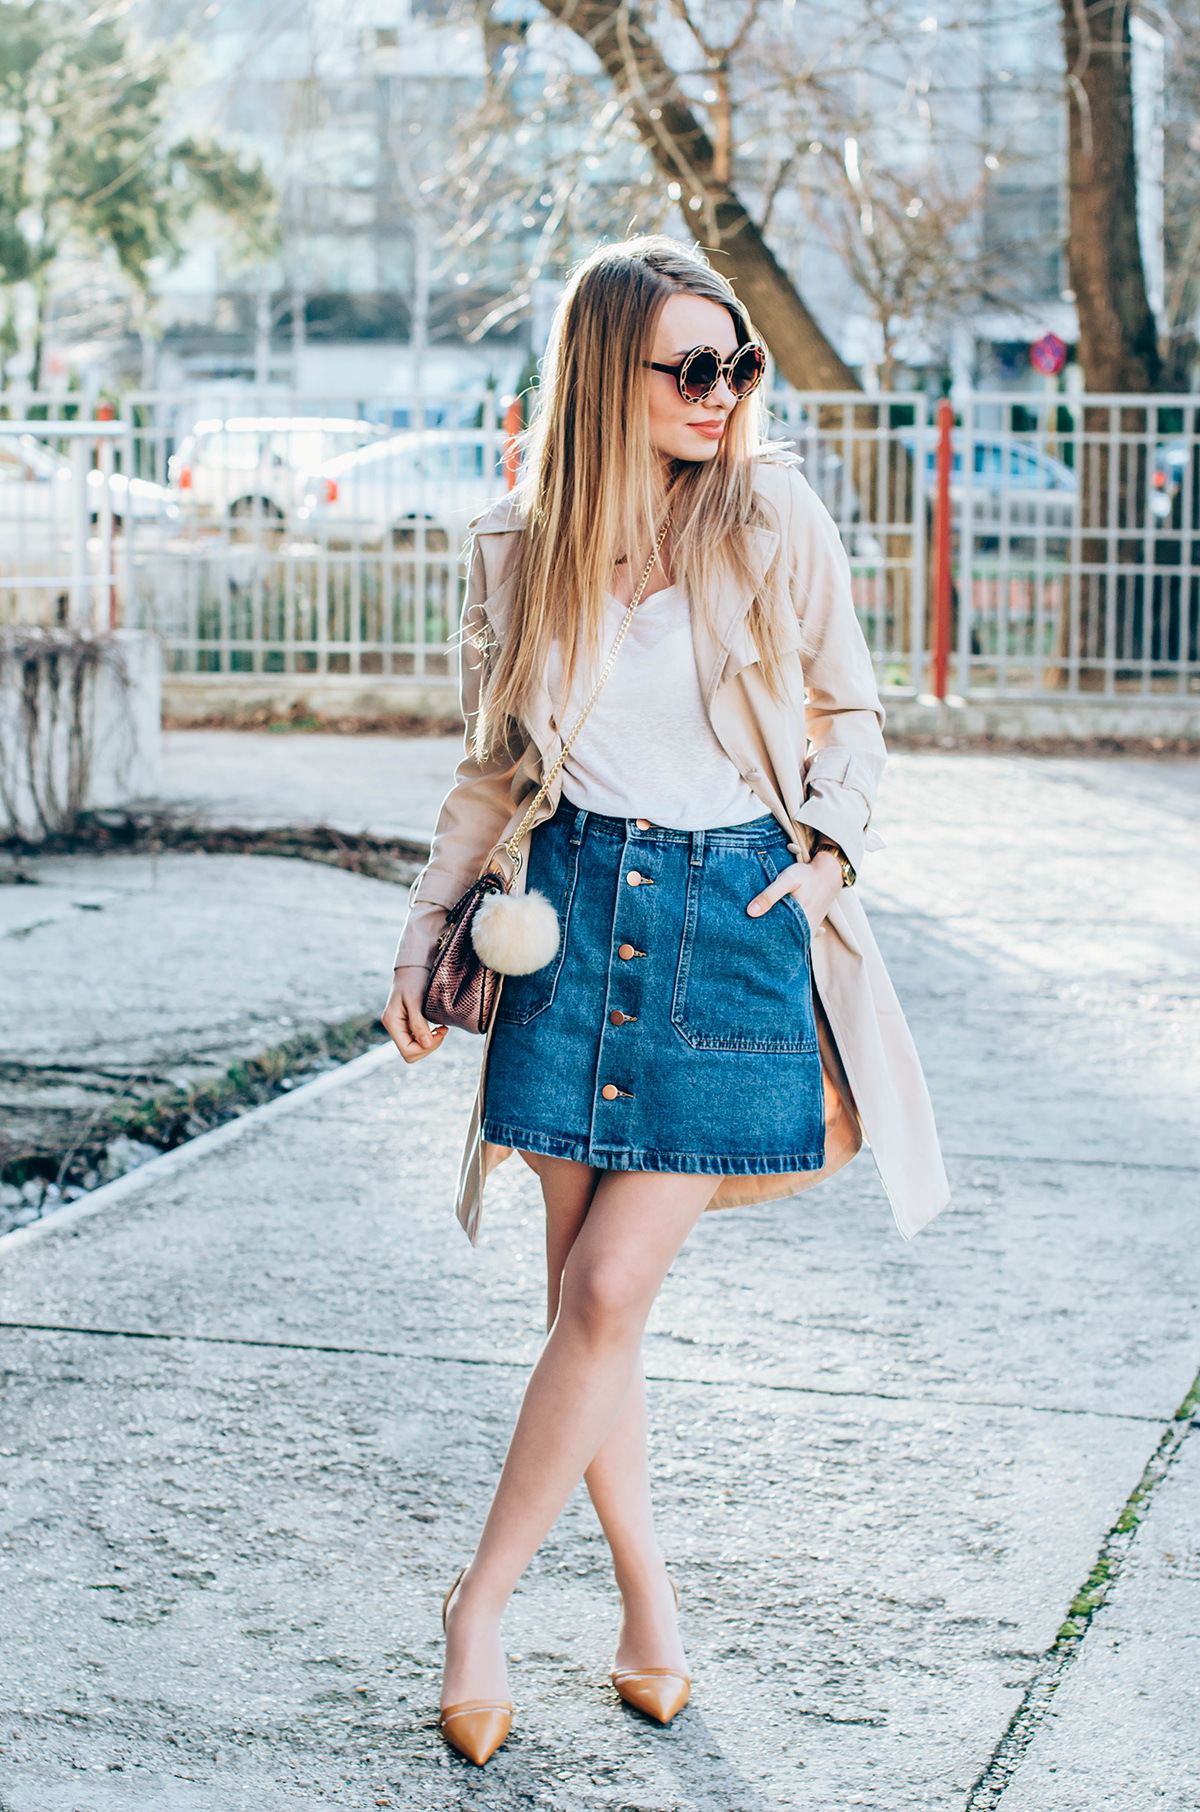 shein-buttoned-denim-skirt-trench-coat-outfit-snake-chloe-bag-fur-pom-pom-outfit (8)